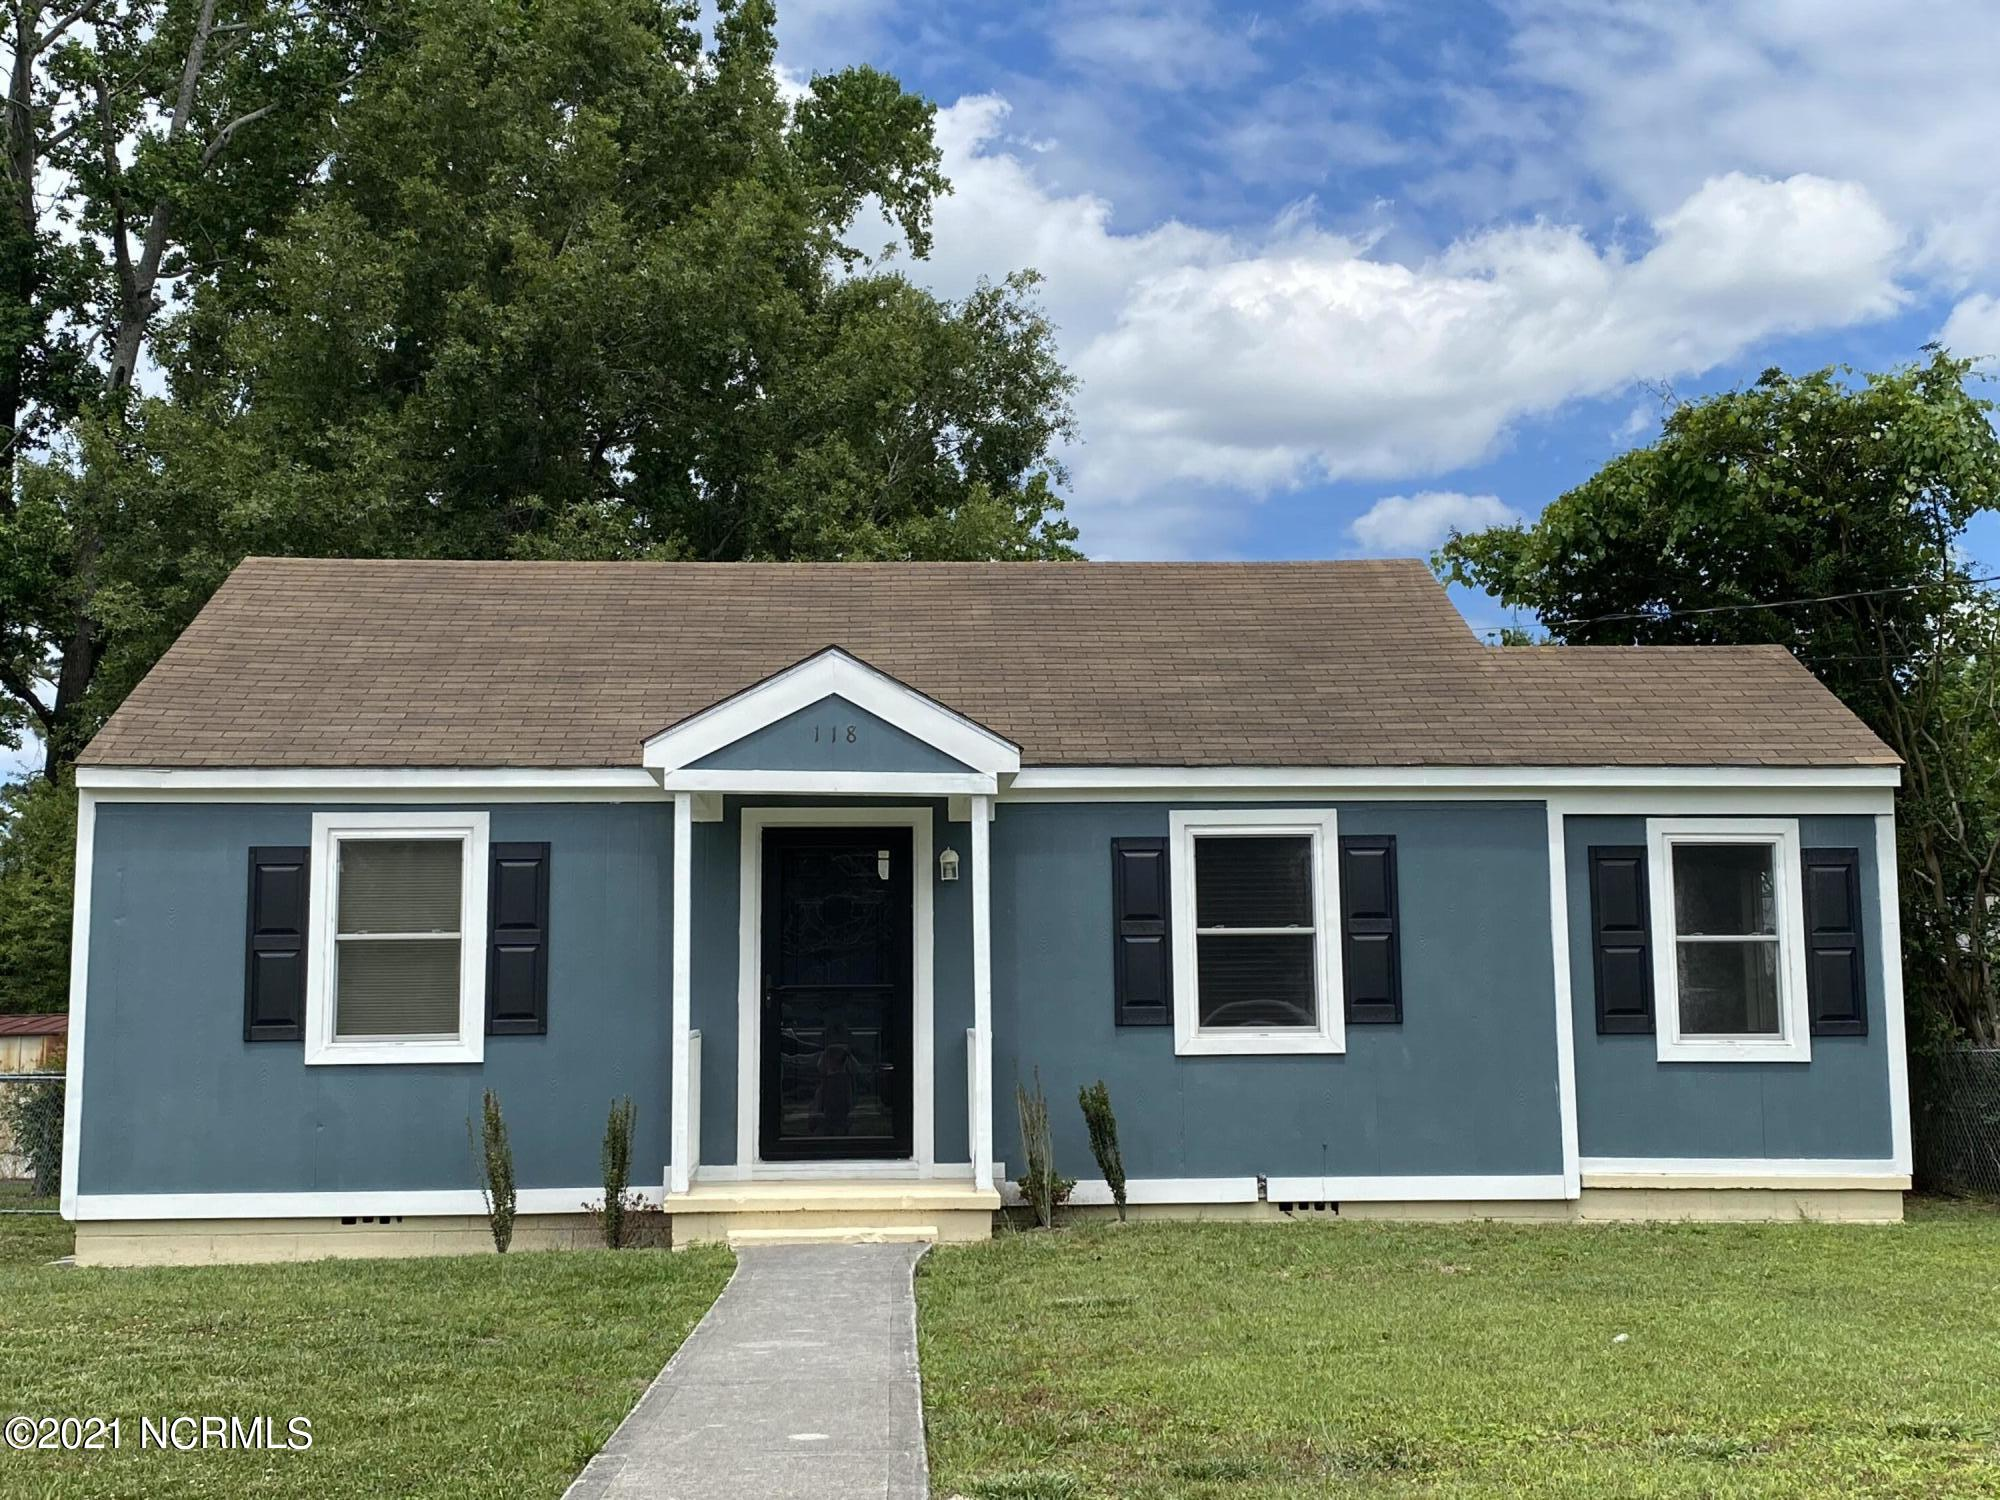 Do you want to be close to everything? Well look no further this cute 2 bedroom 2 bath home features brand new flooring and new paint. It has all the charm of an older home.